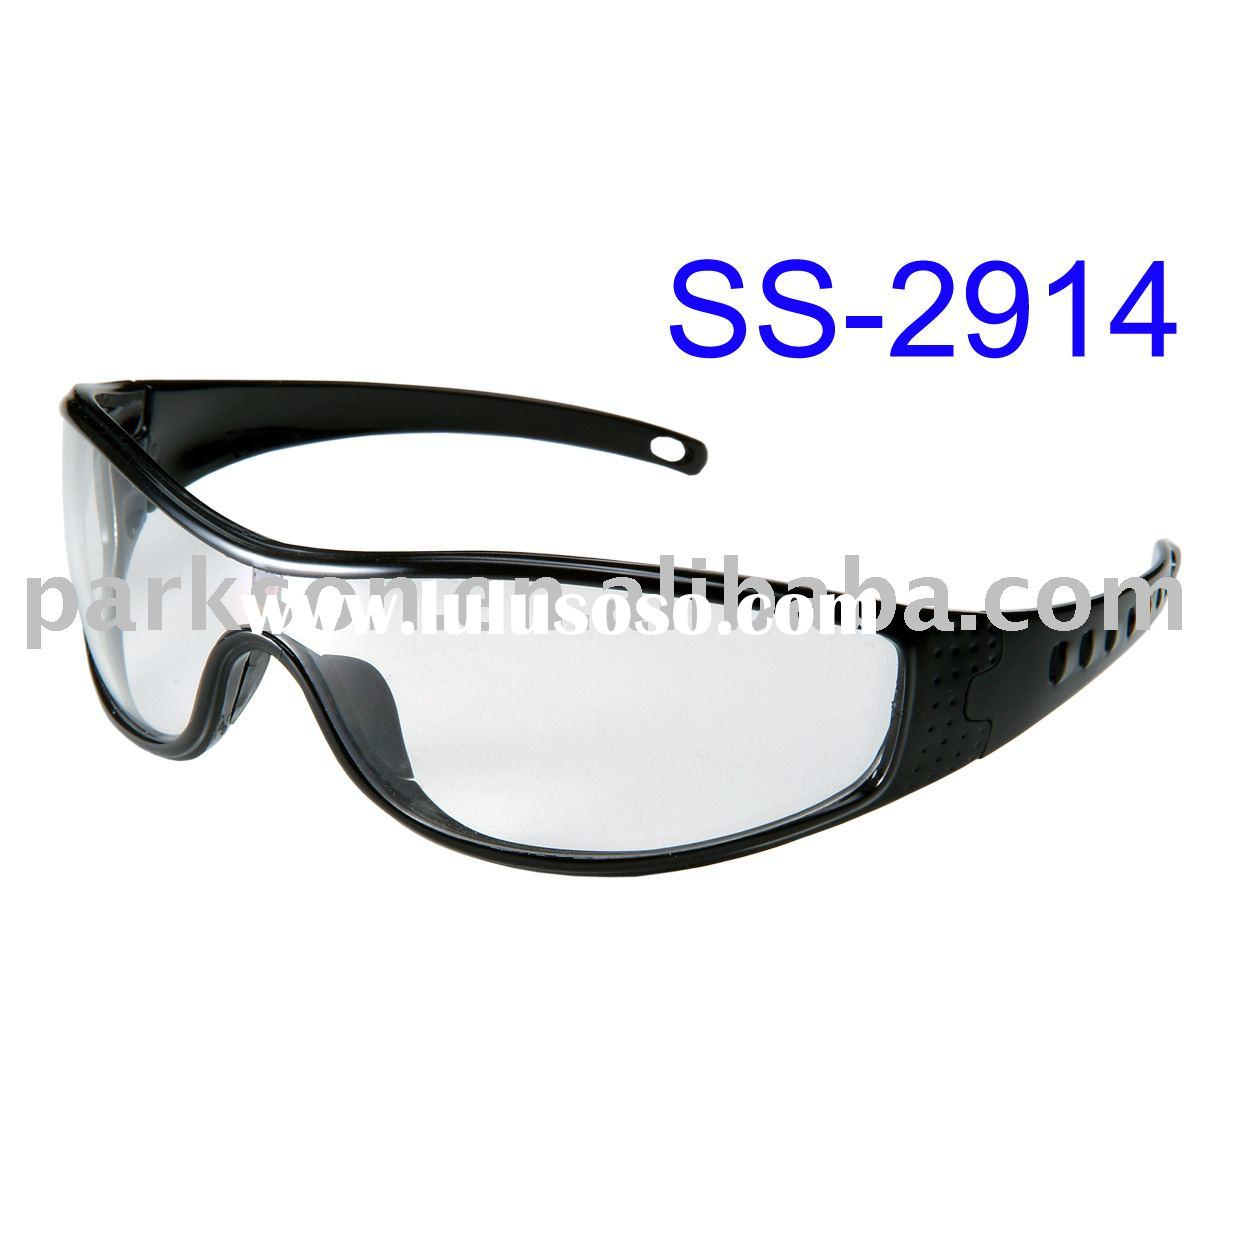 safety spectacles, safety glasses,sports glasses, protective glasses, ce spectacles, glasses, eye we